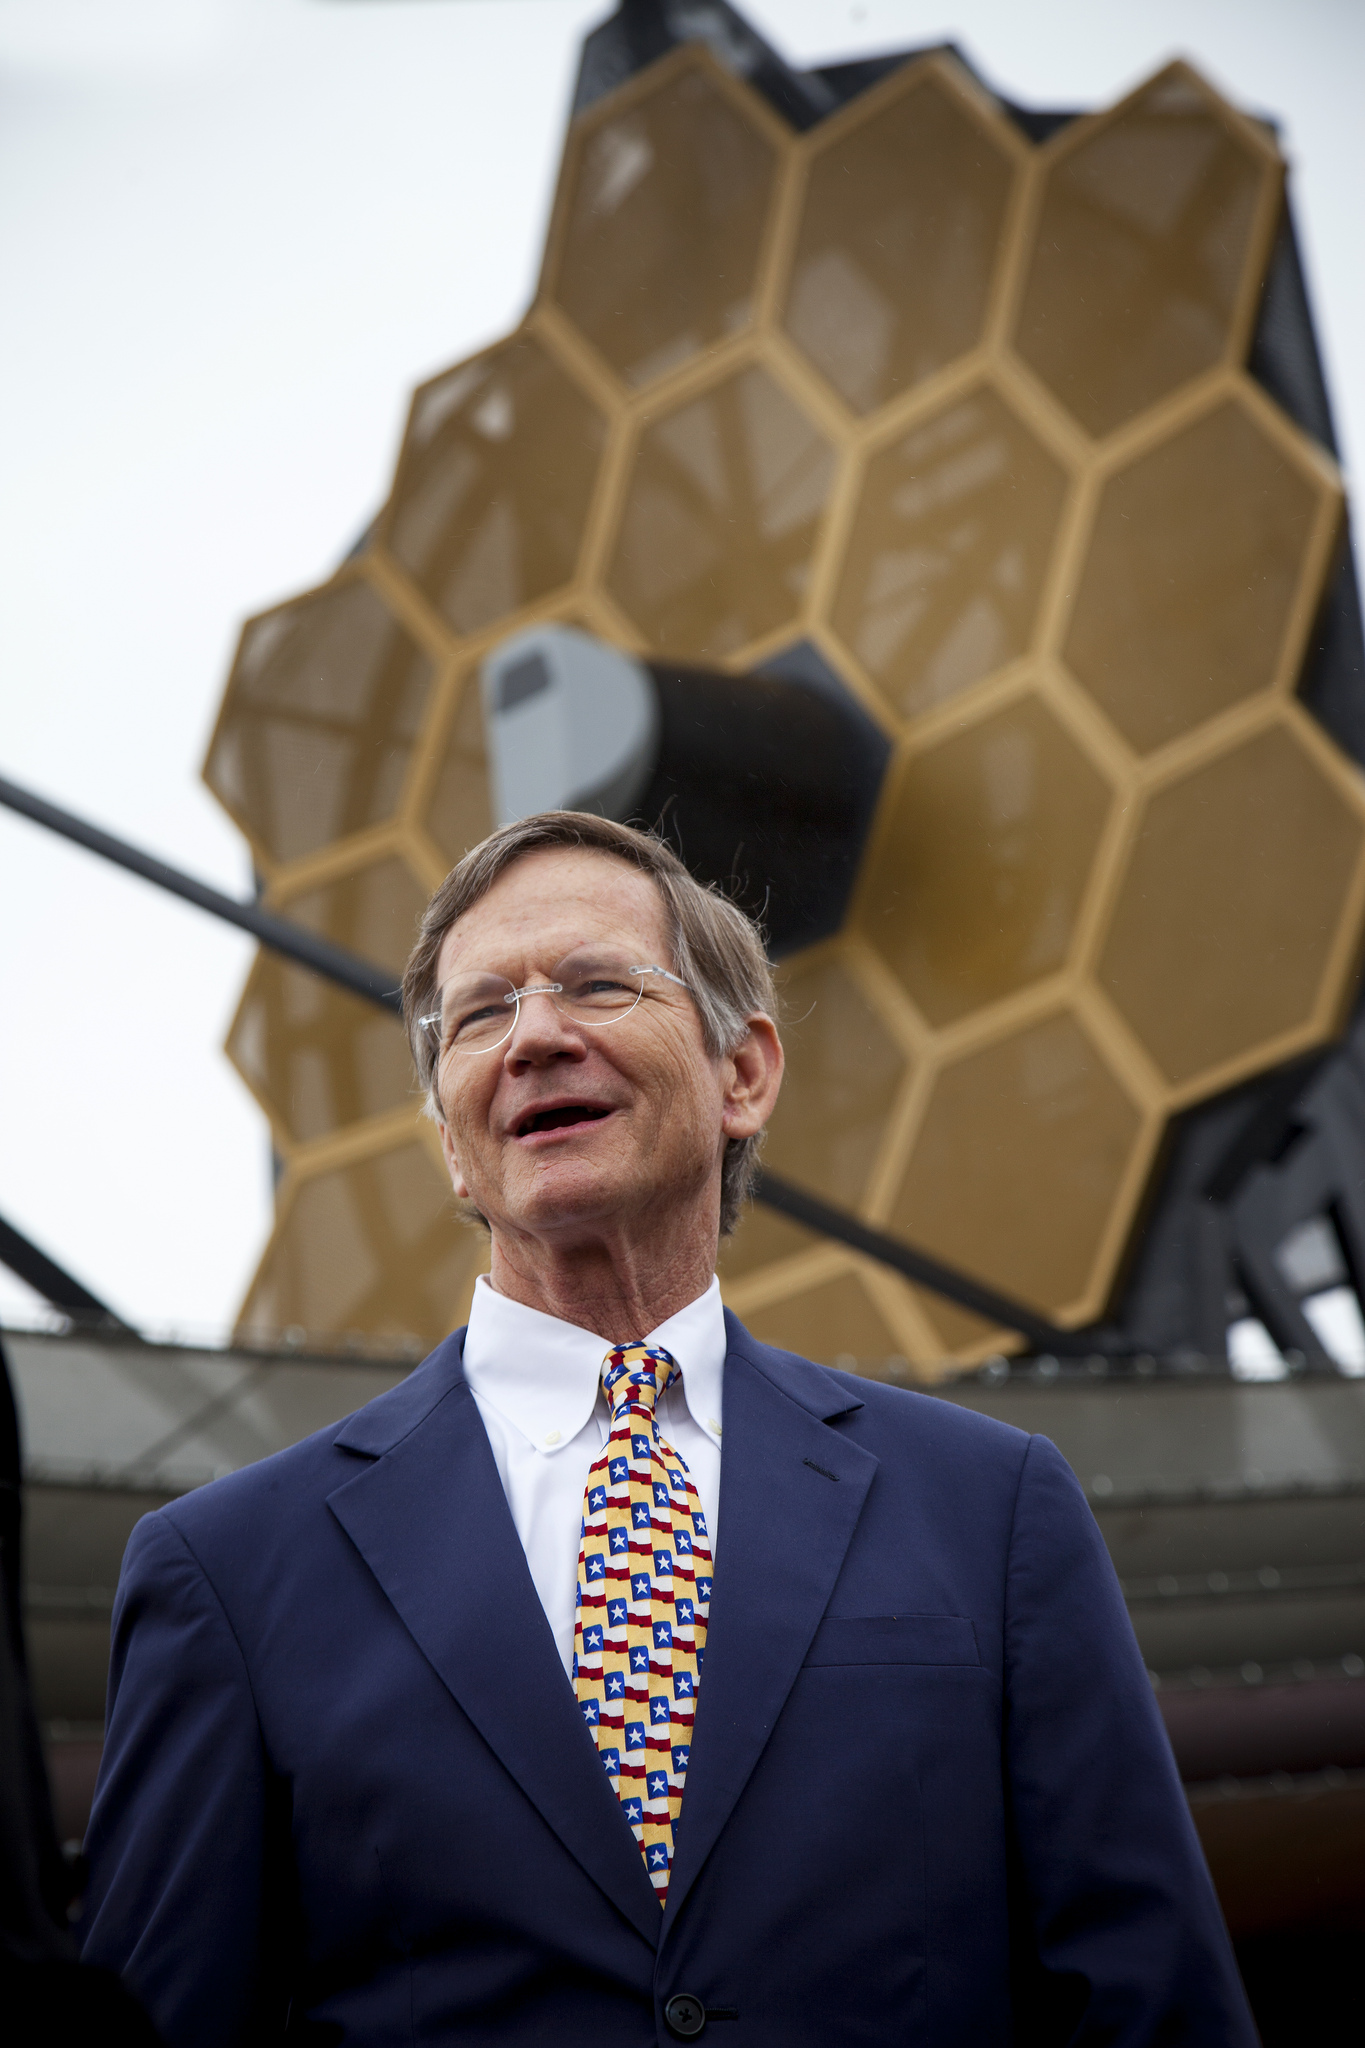 Rep. Lamar Smith, R-Texas, chairman of the House Science Committee. Credit: NASA/Alex Evers